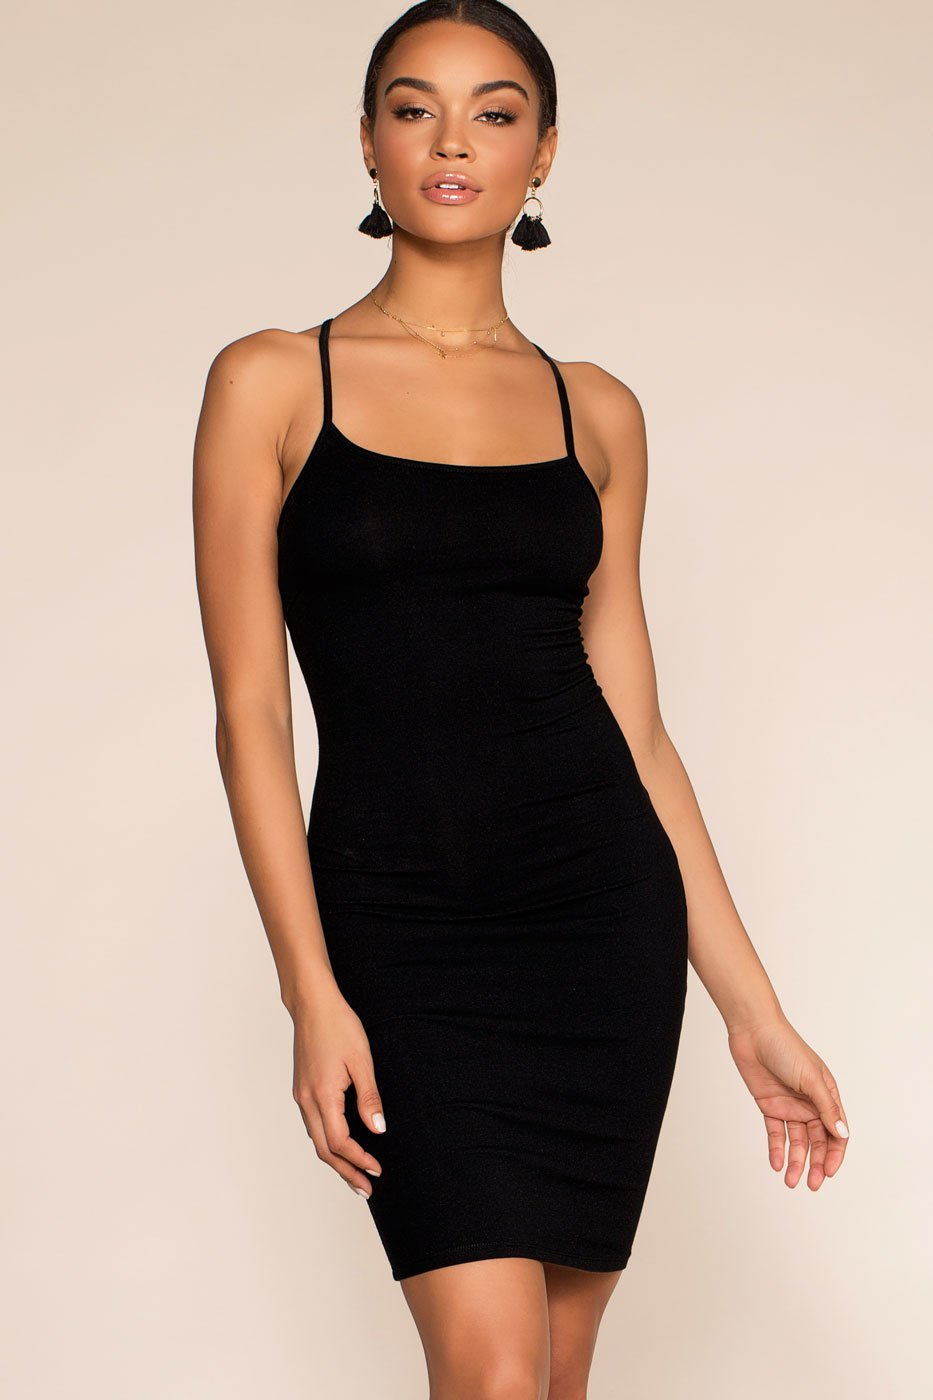 Rosegal what does mean ups dress it bodycon kuwait